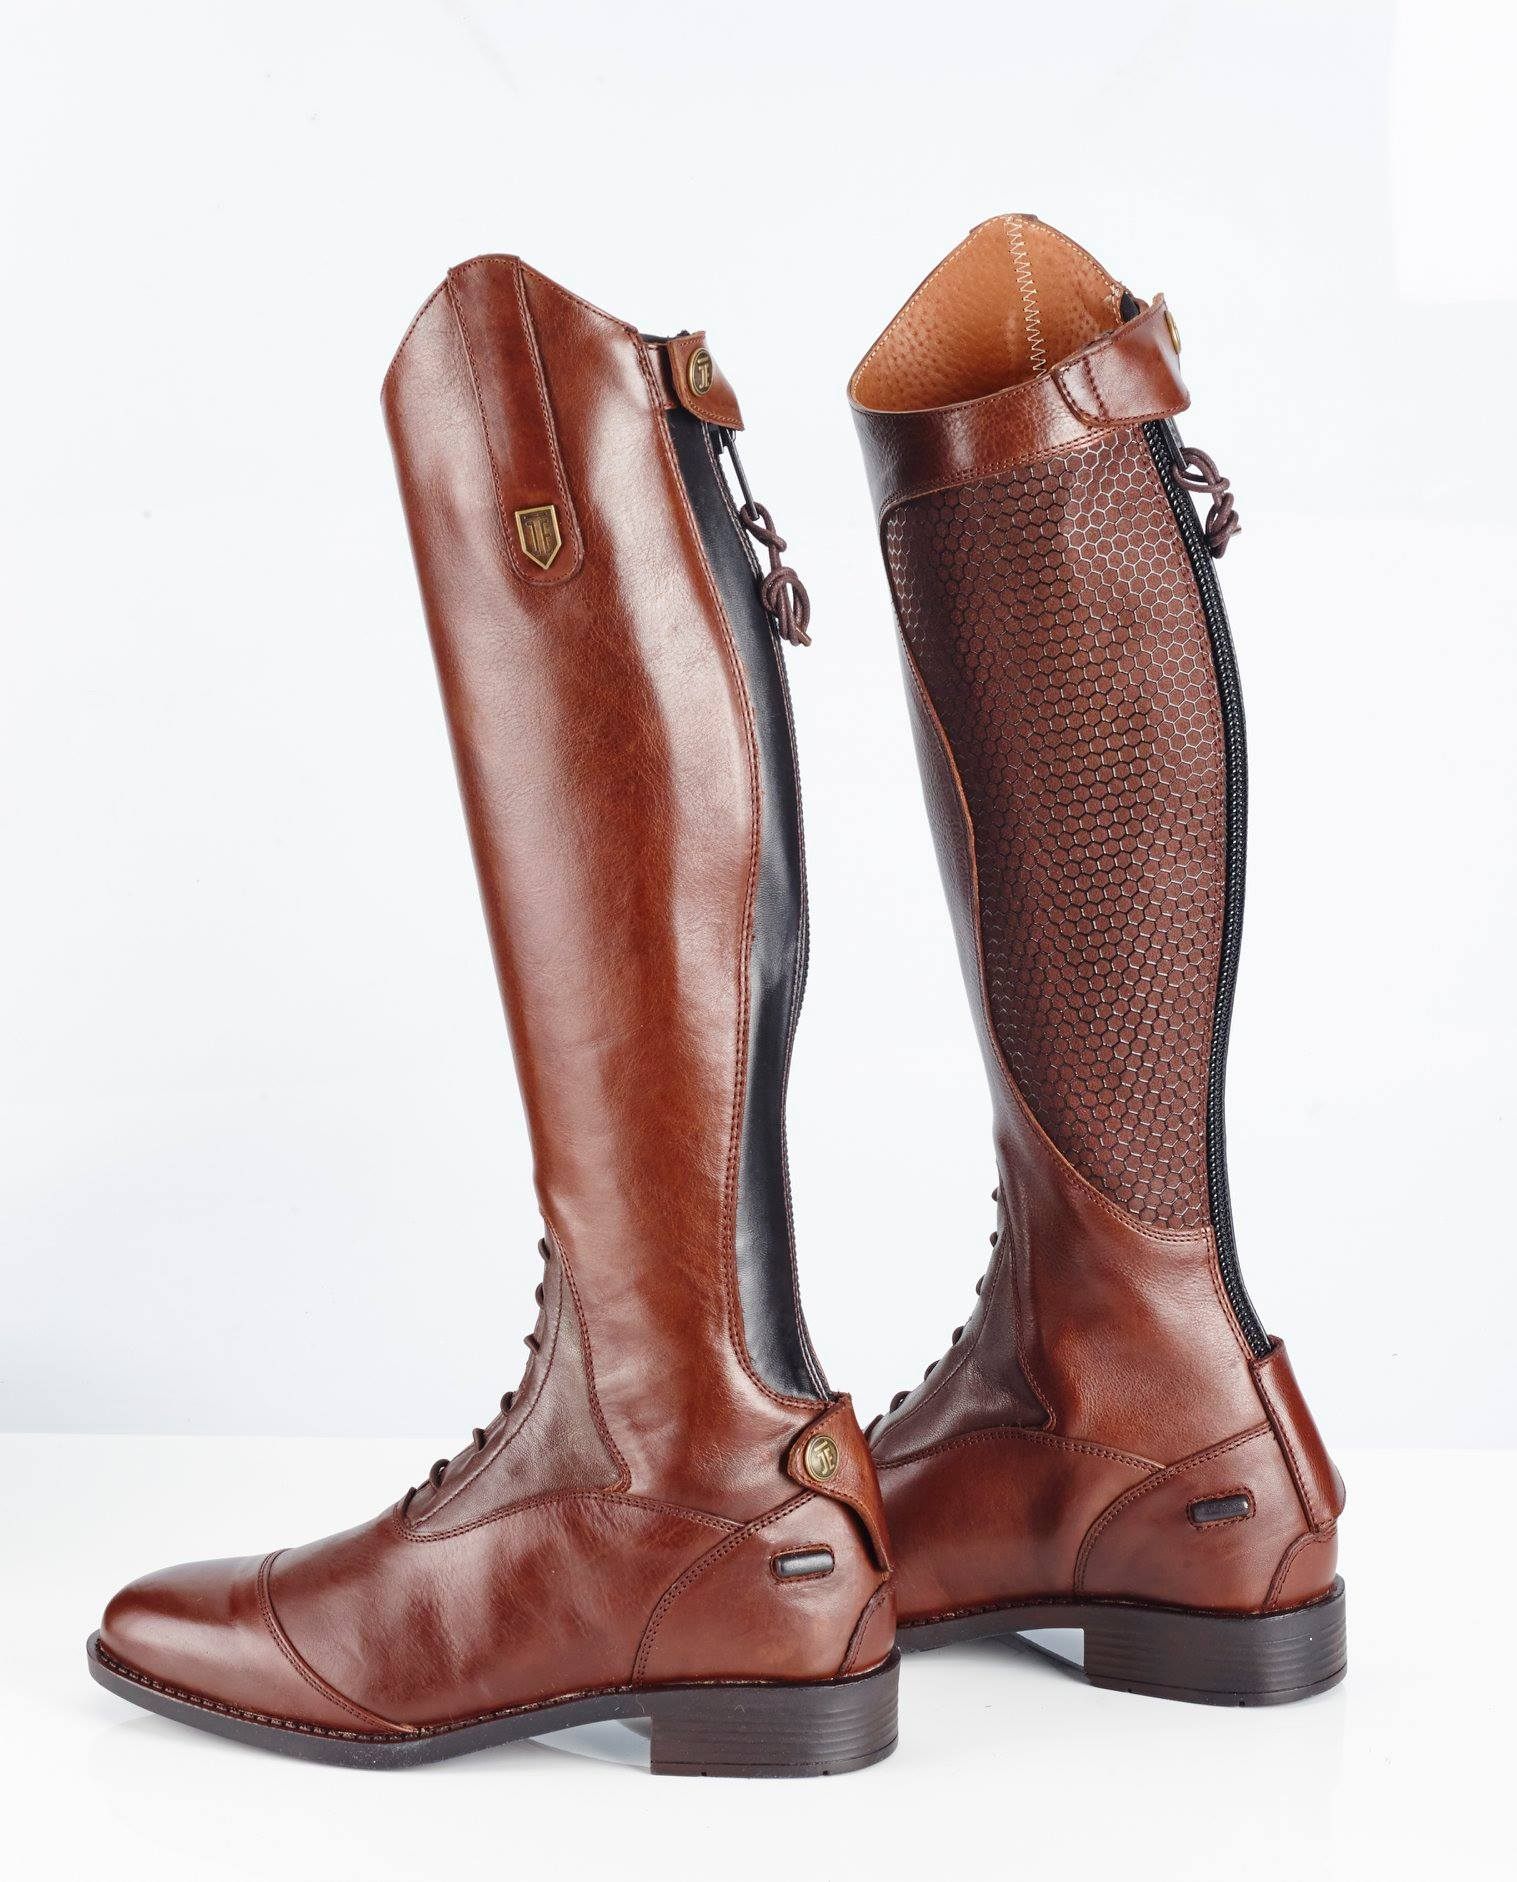 Just Togs Kensington Tall Boots For Width See Size Chart Below